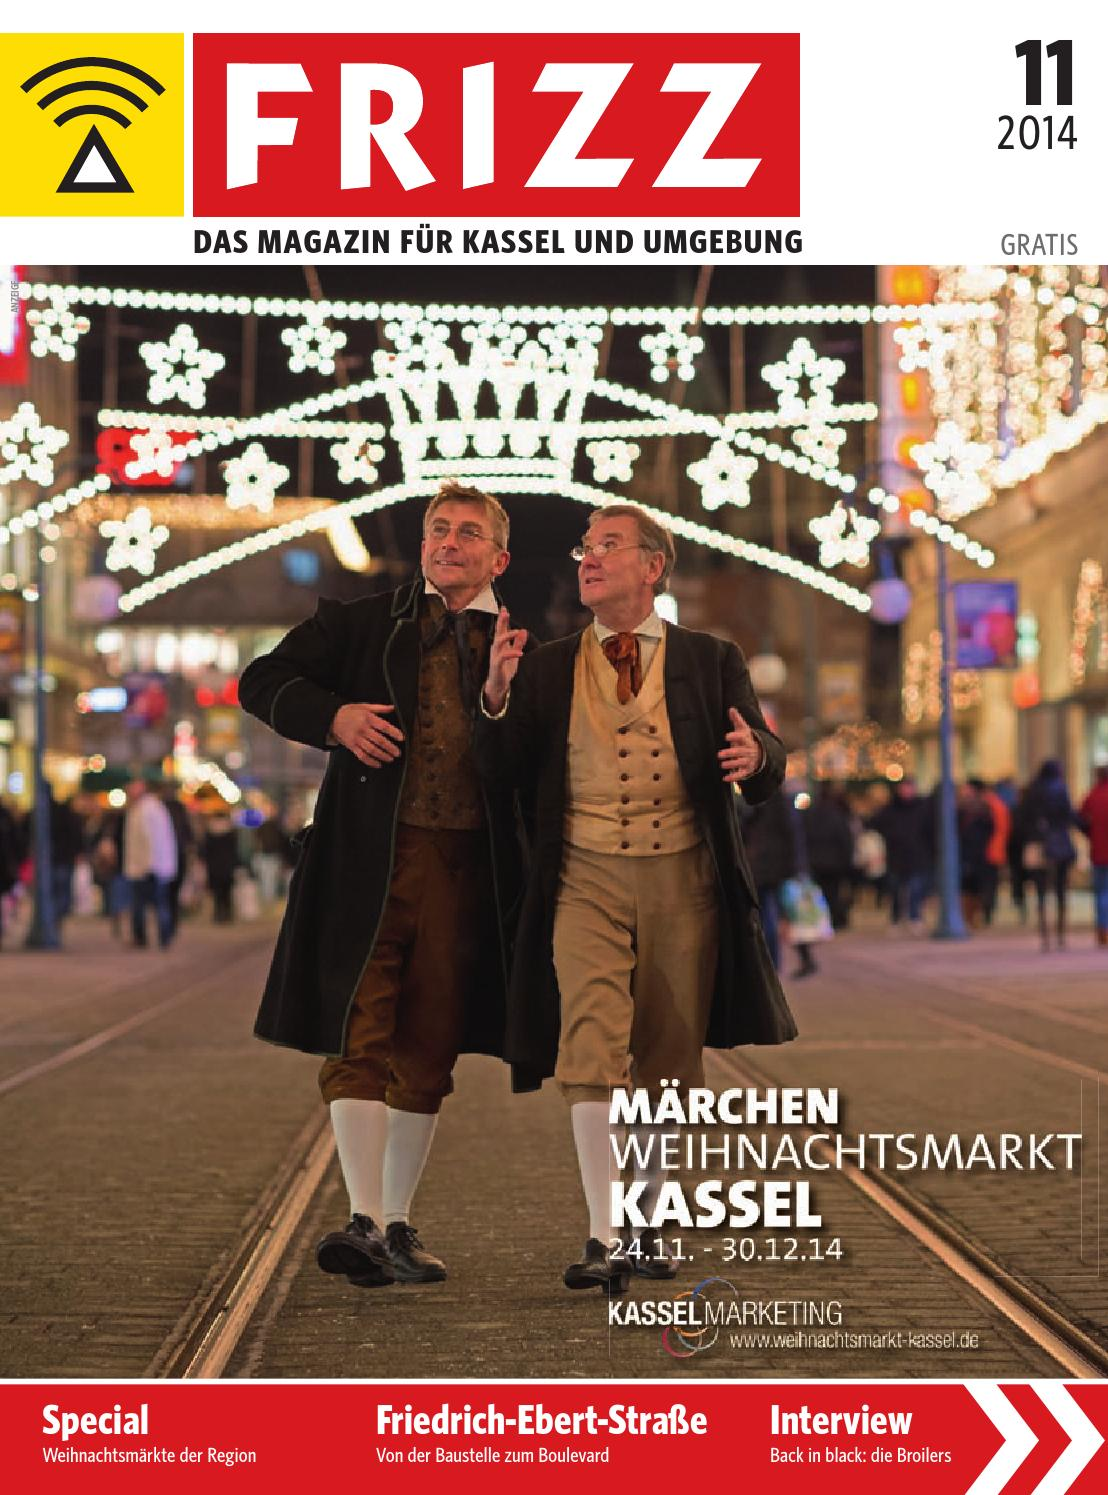 Göttingen Nach Kassel Frizz Das Magazin Kassel November 2014 By Frizz Kassel Issuu